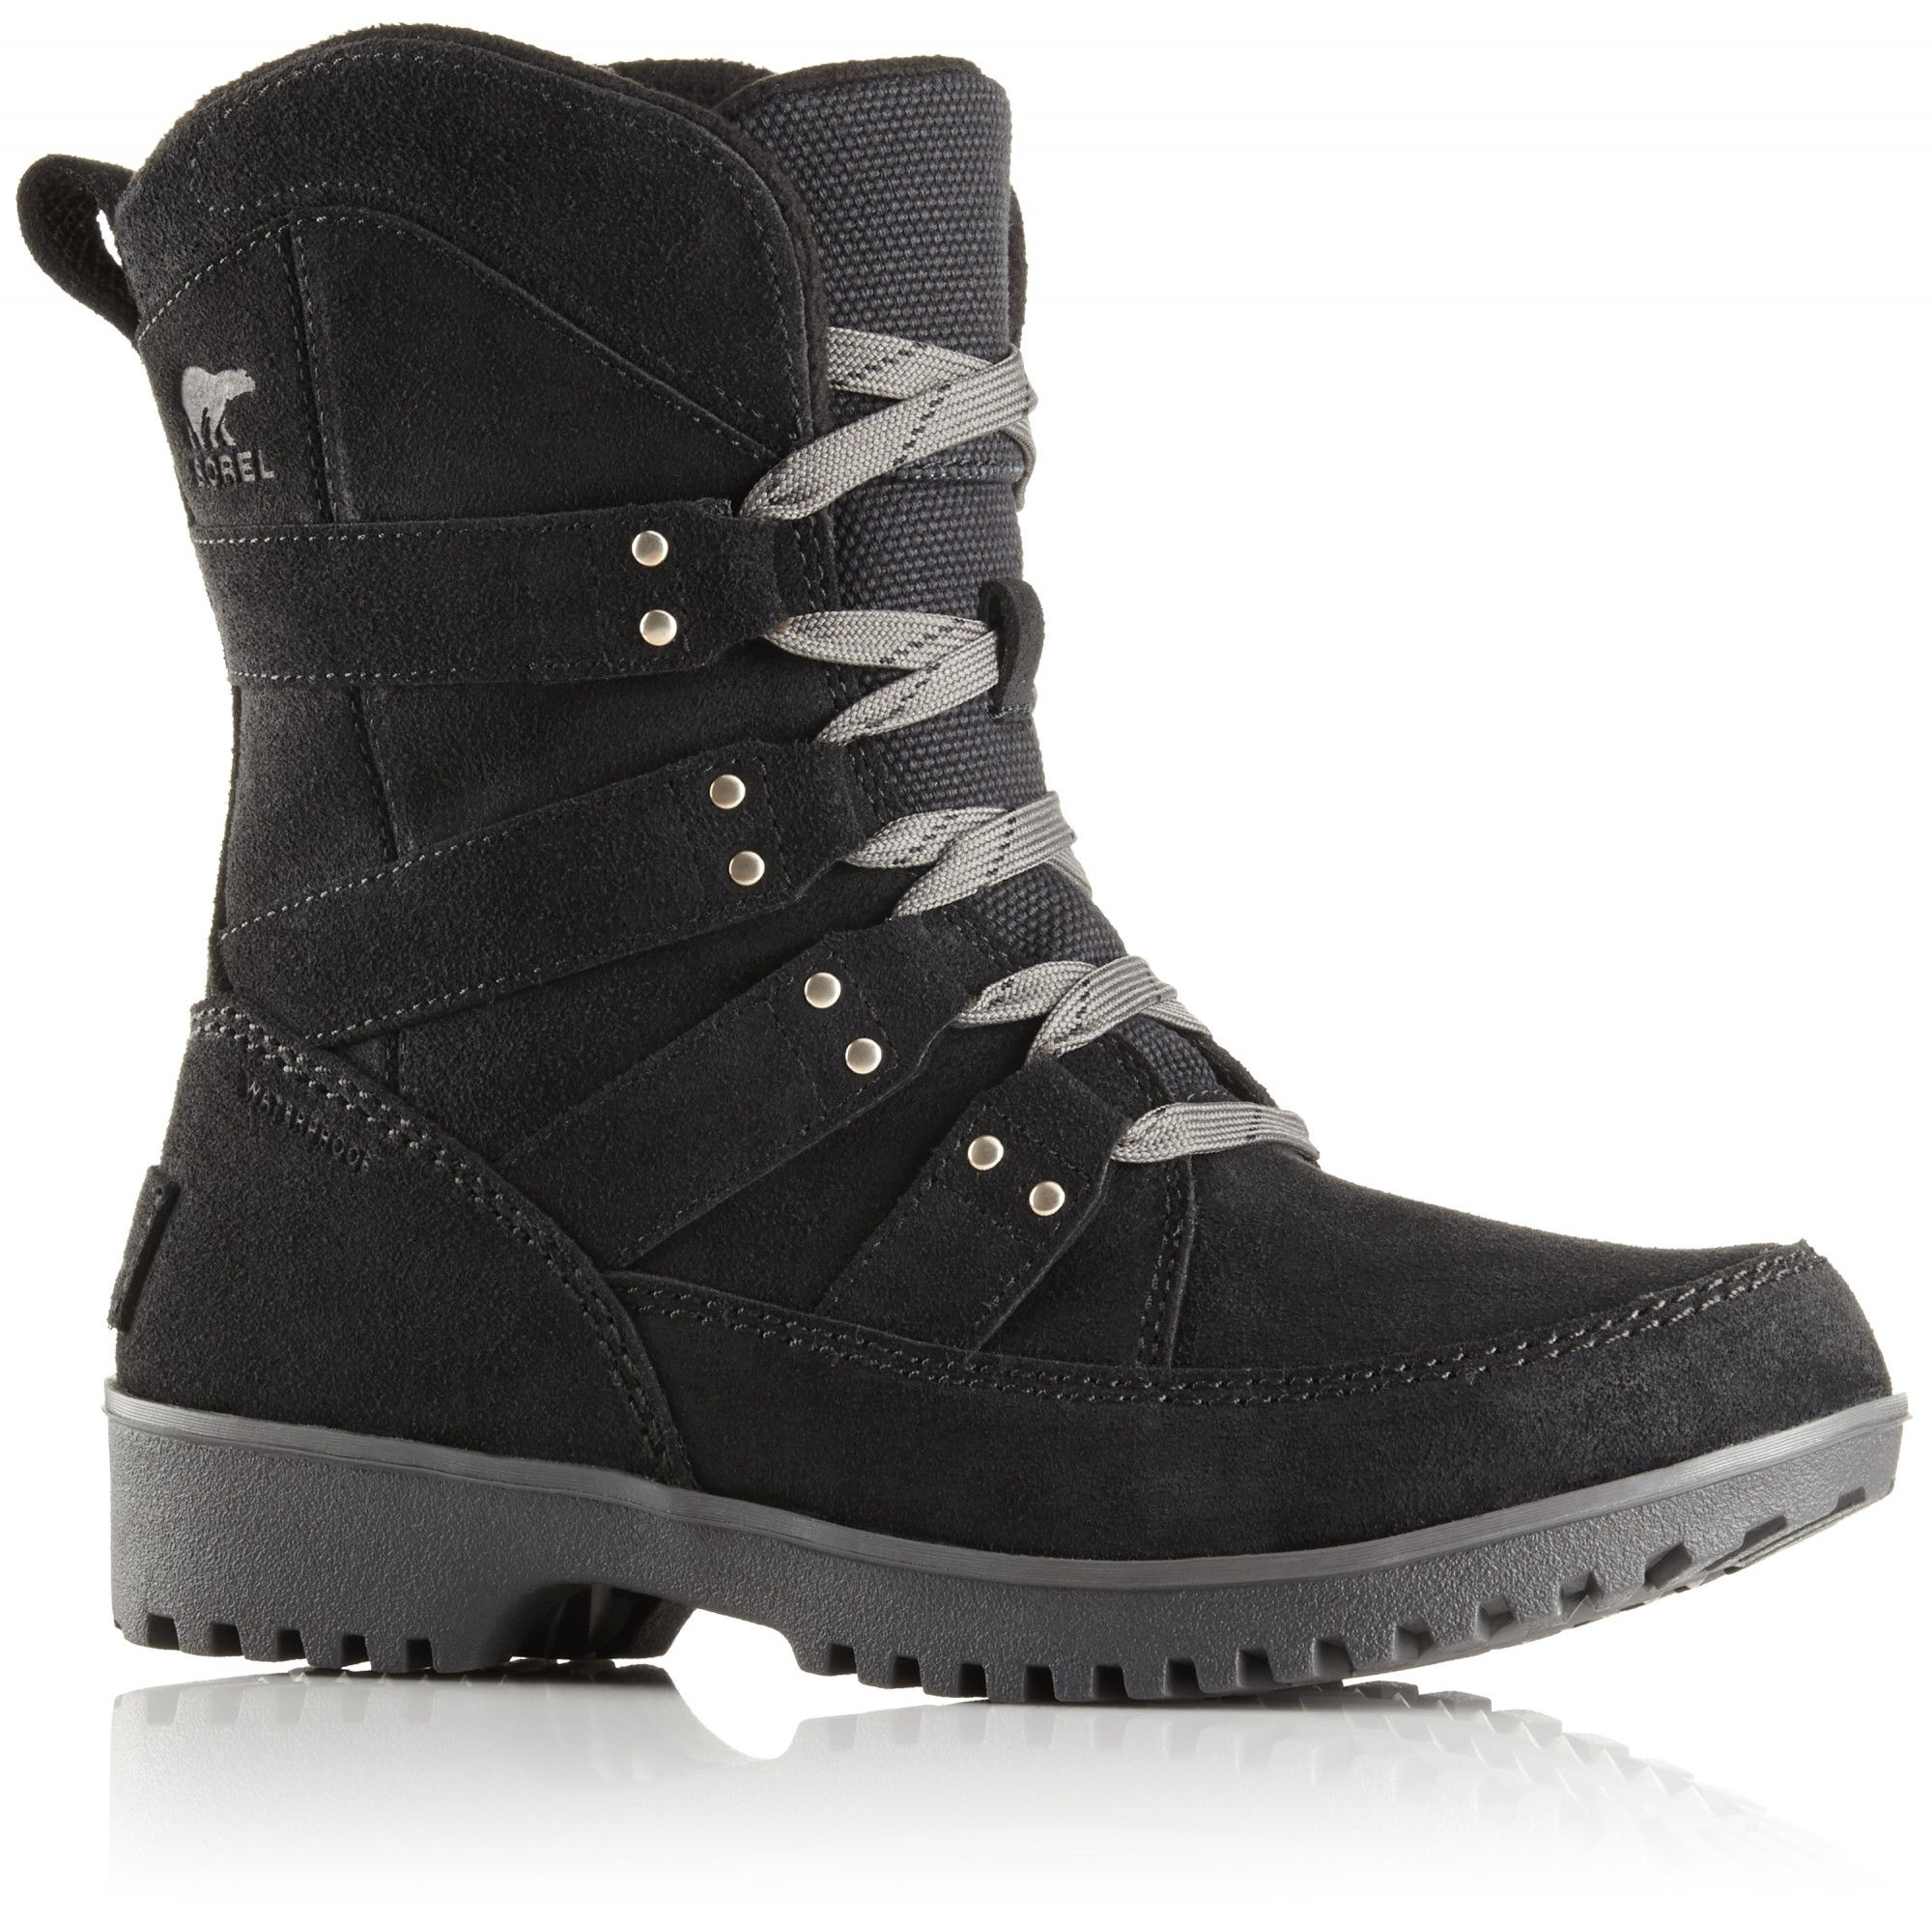 Sorel Meadow Lace Schwarz, Female EU 36 -Farbe Black, 36